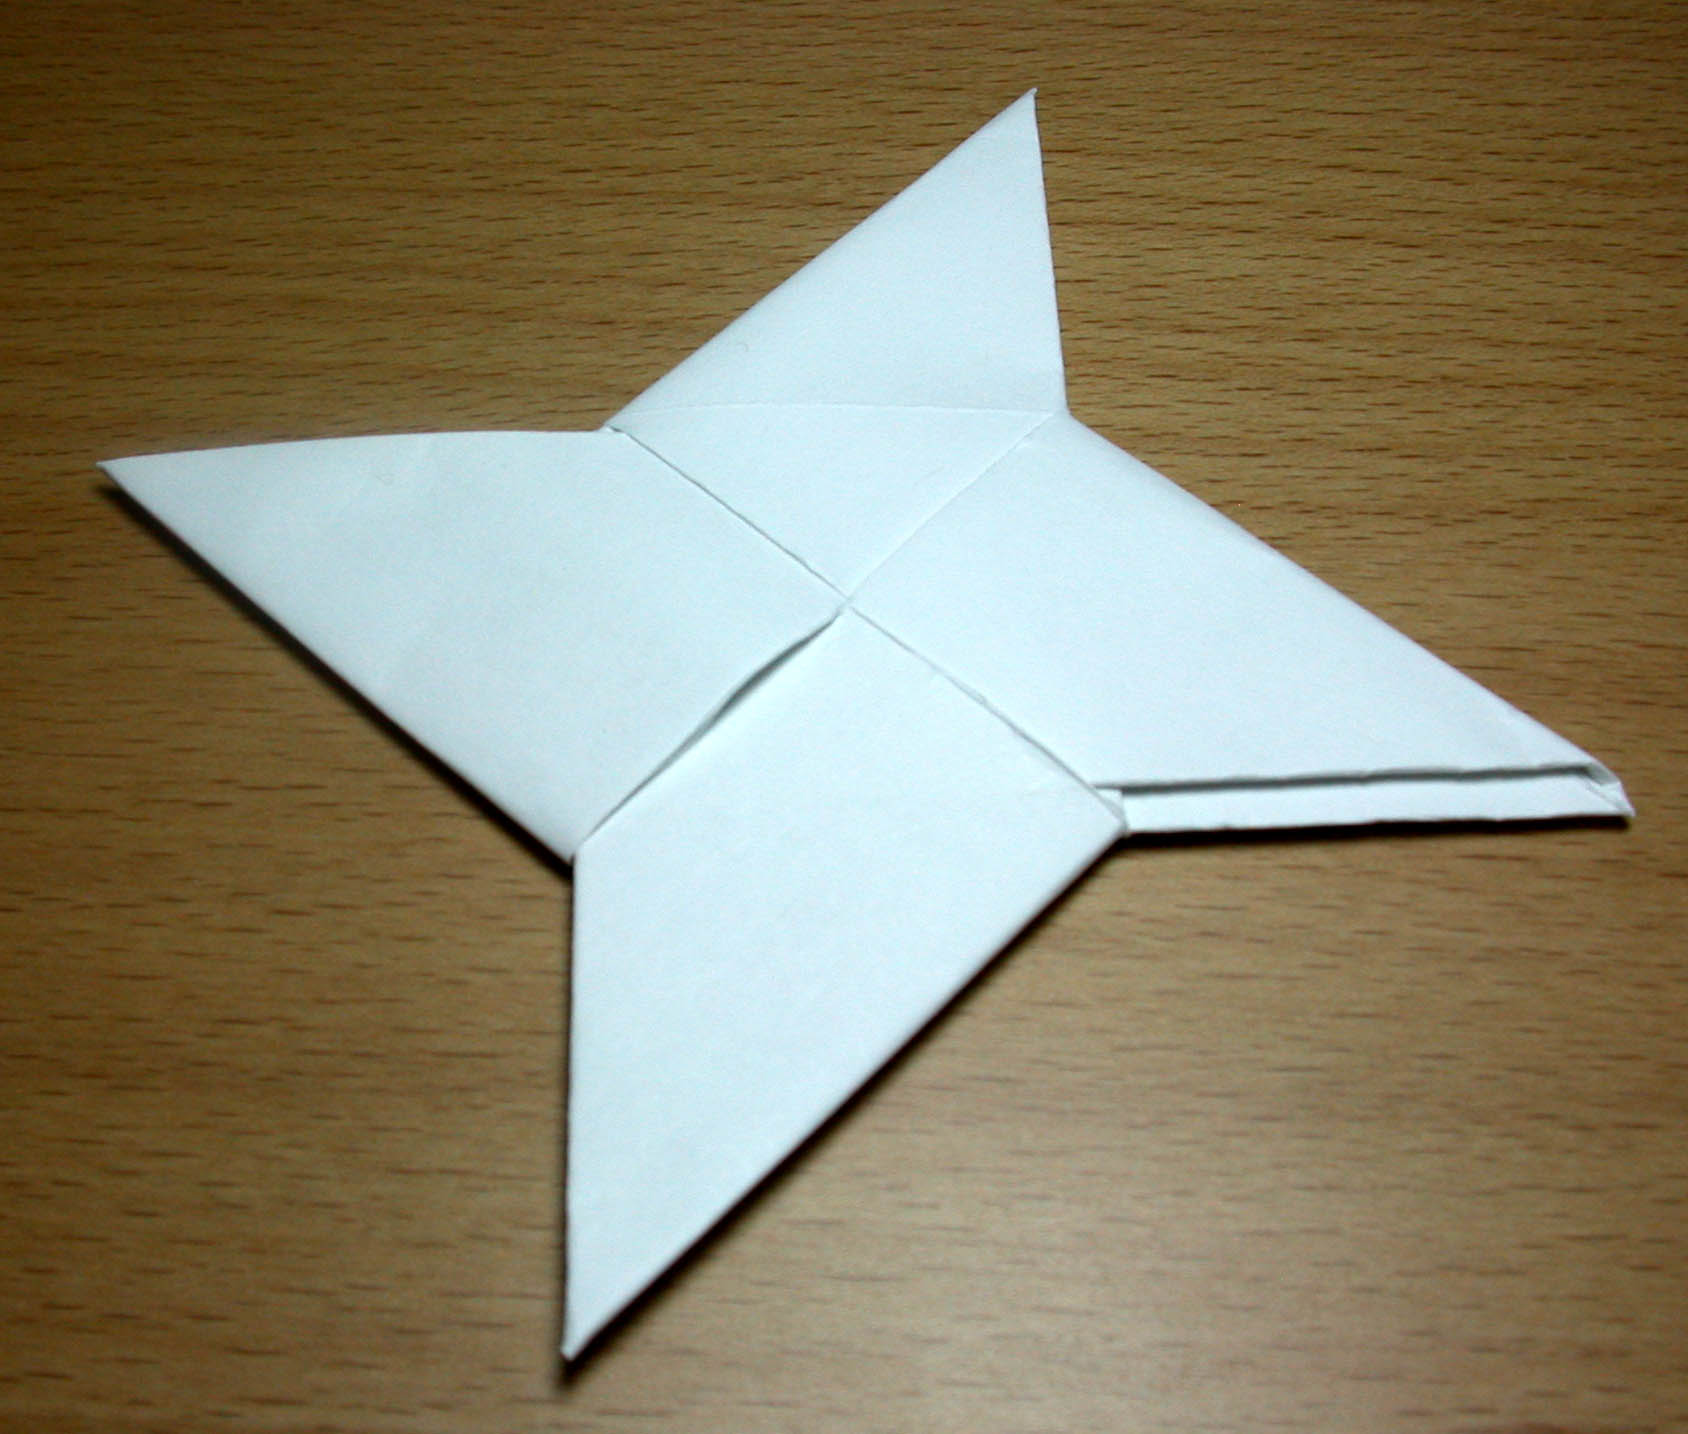 File:Origami Ninja Star.jpg  Wikimedia Commons